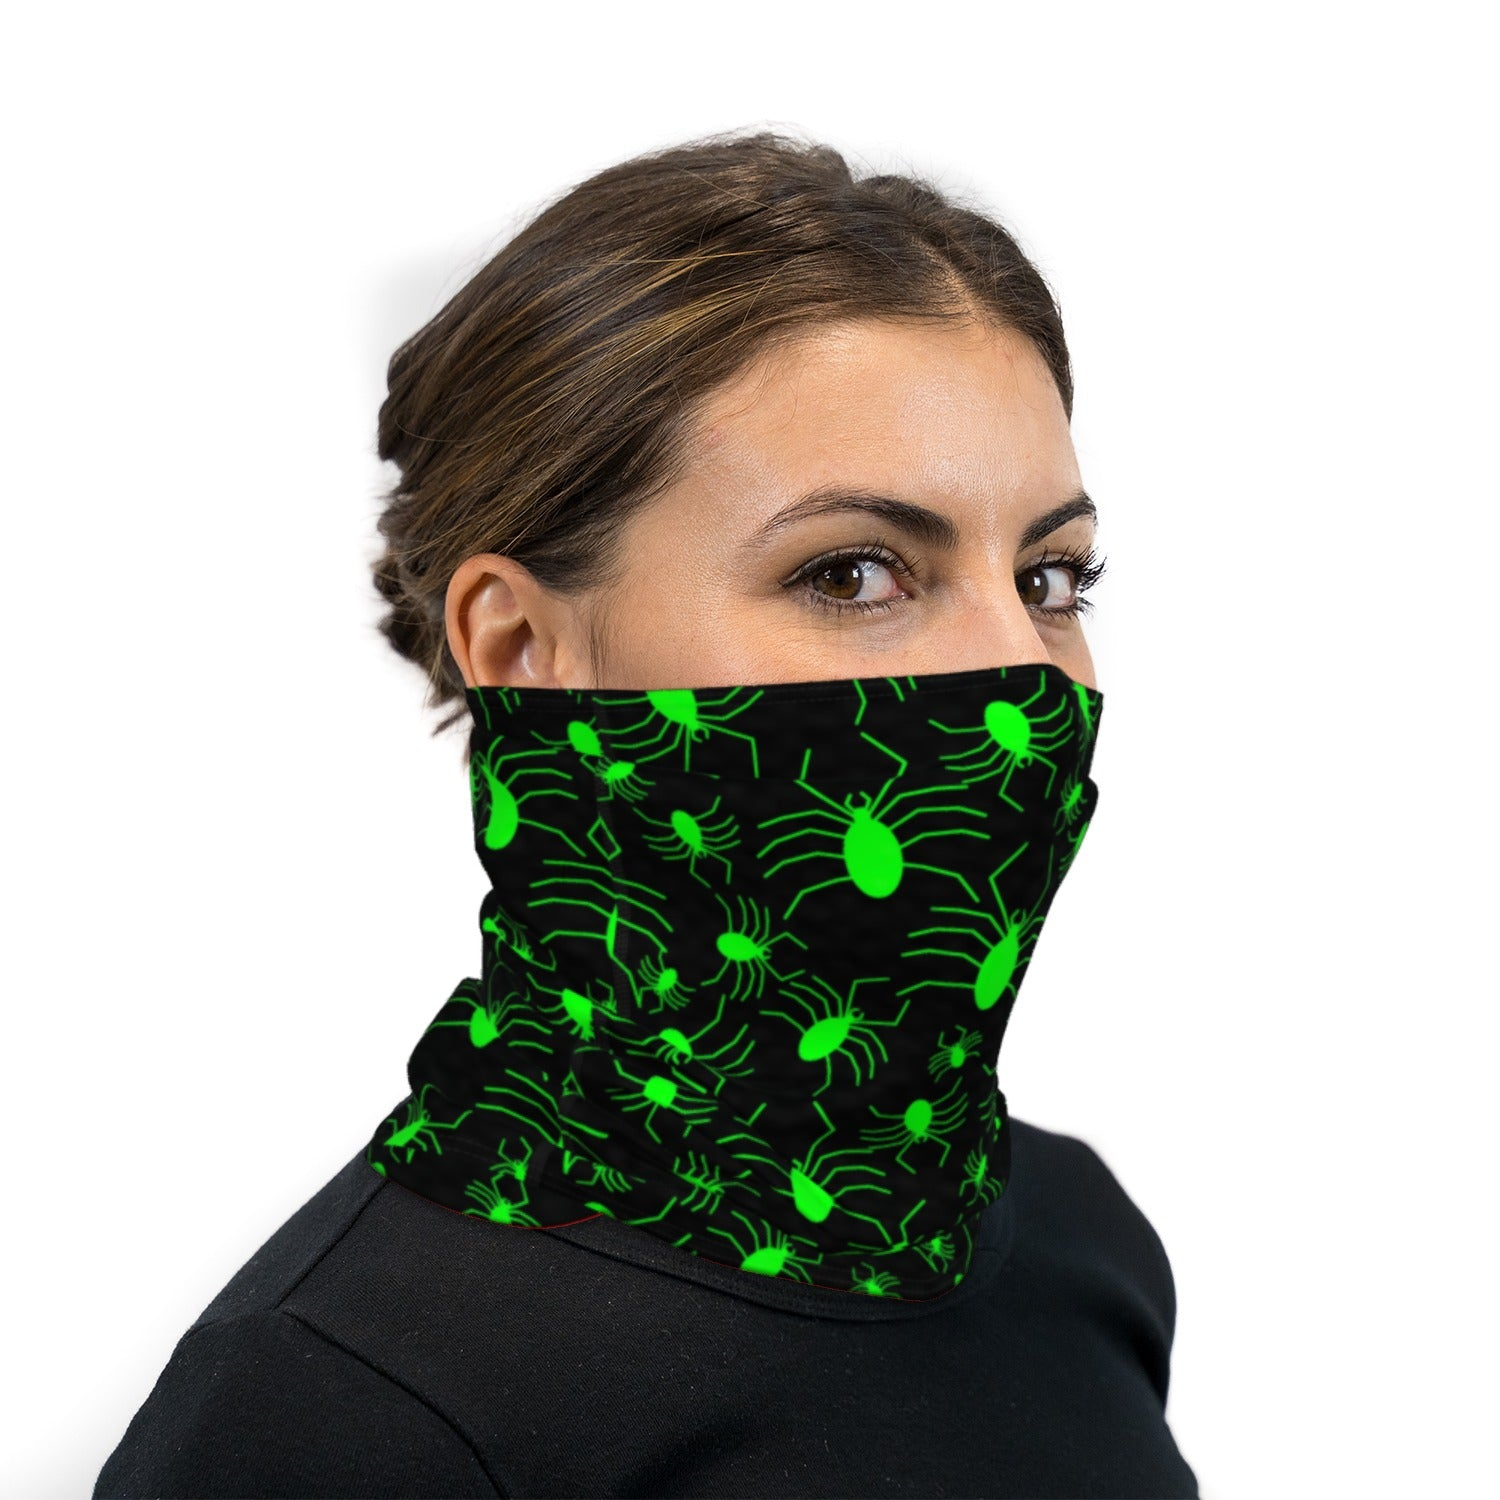 Black and Green Slime Spiders Neck Gaiter Face Mask